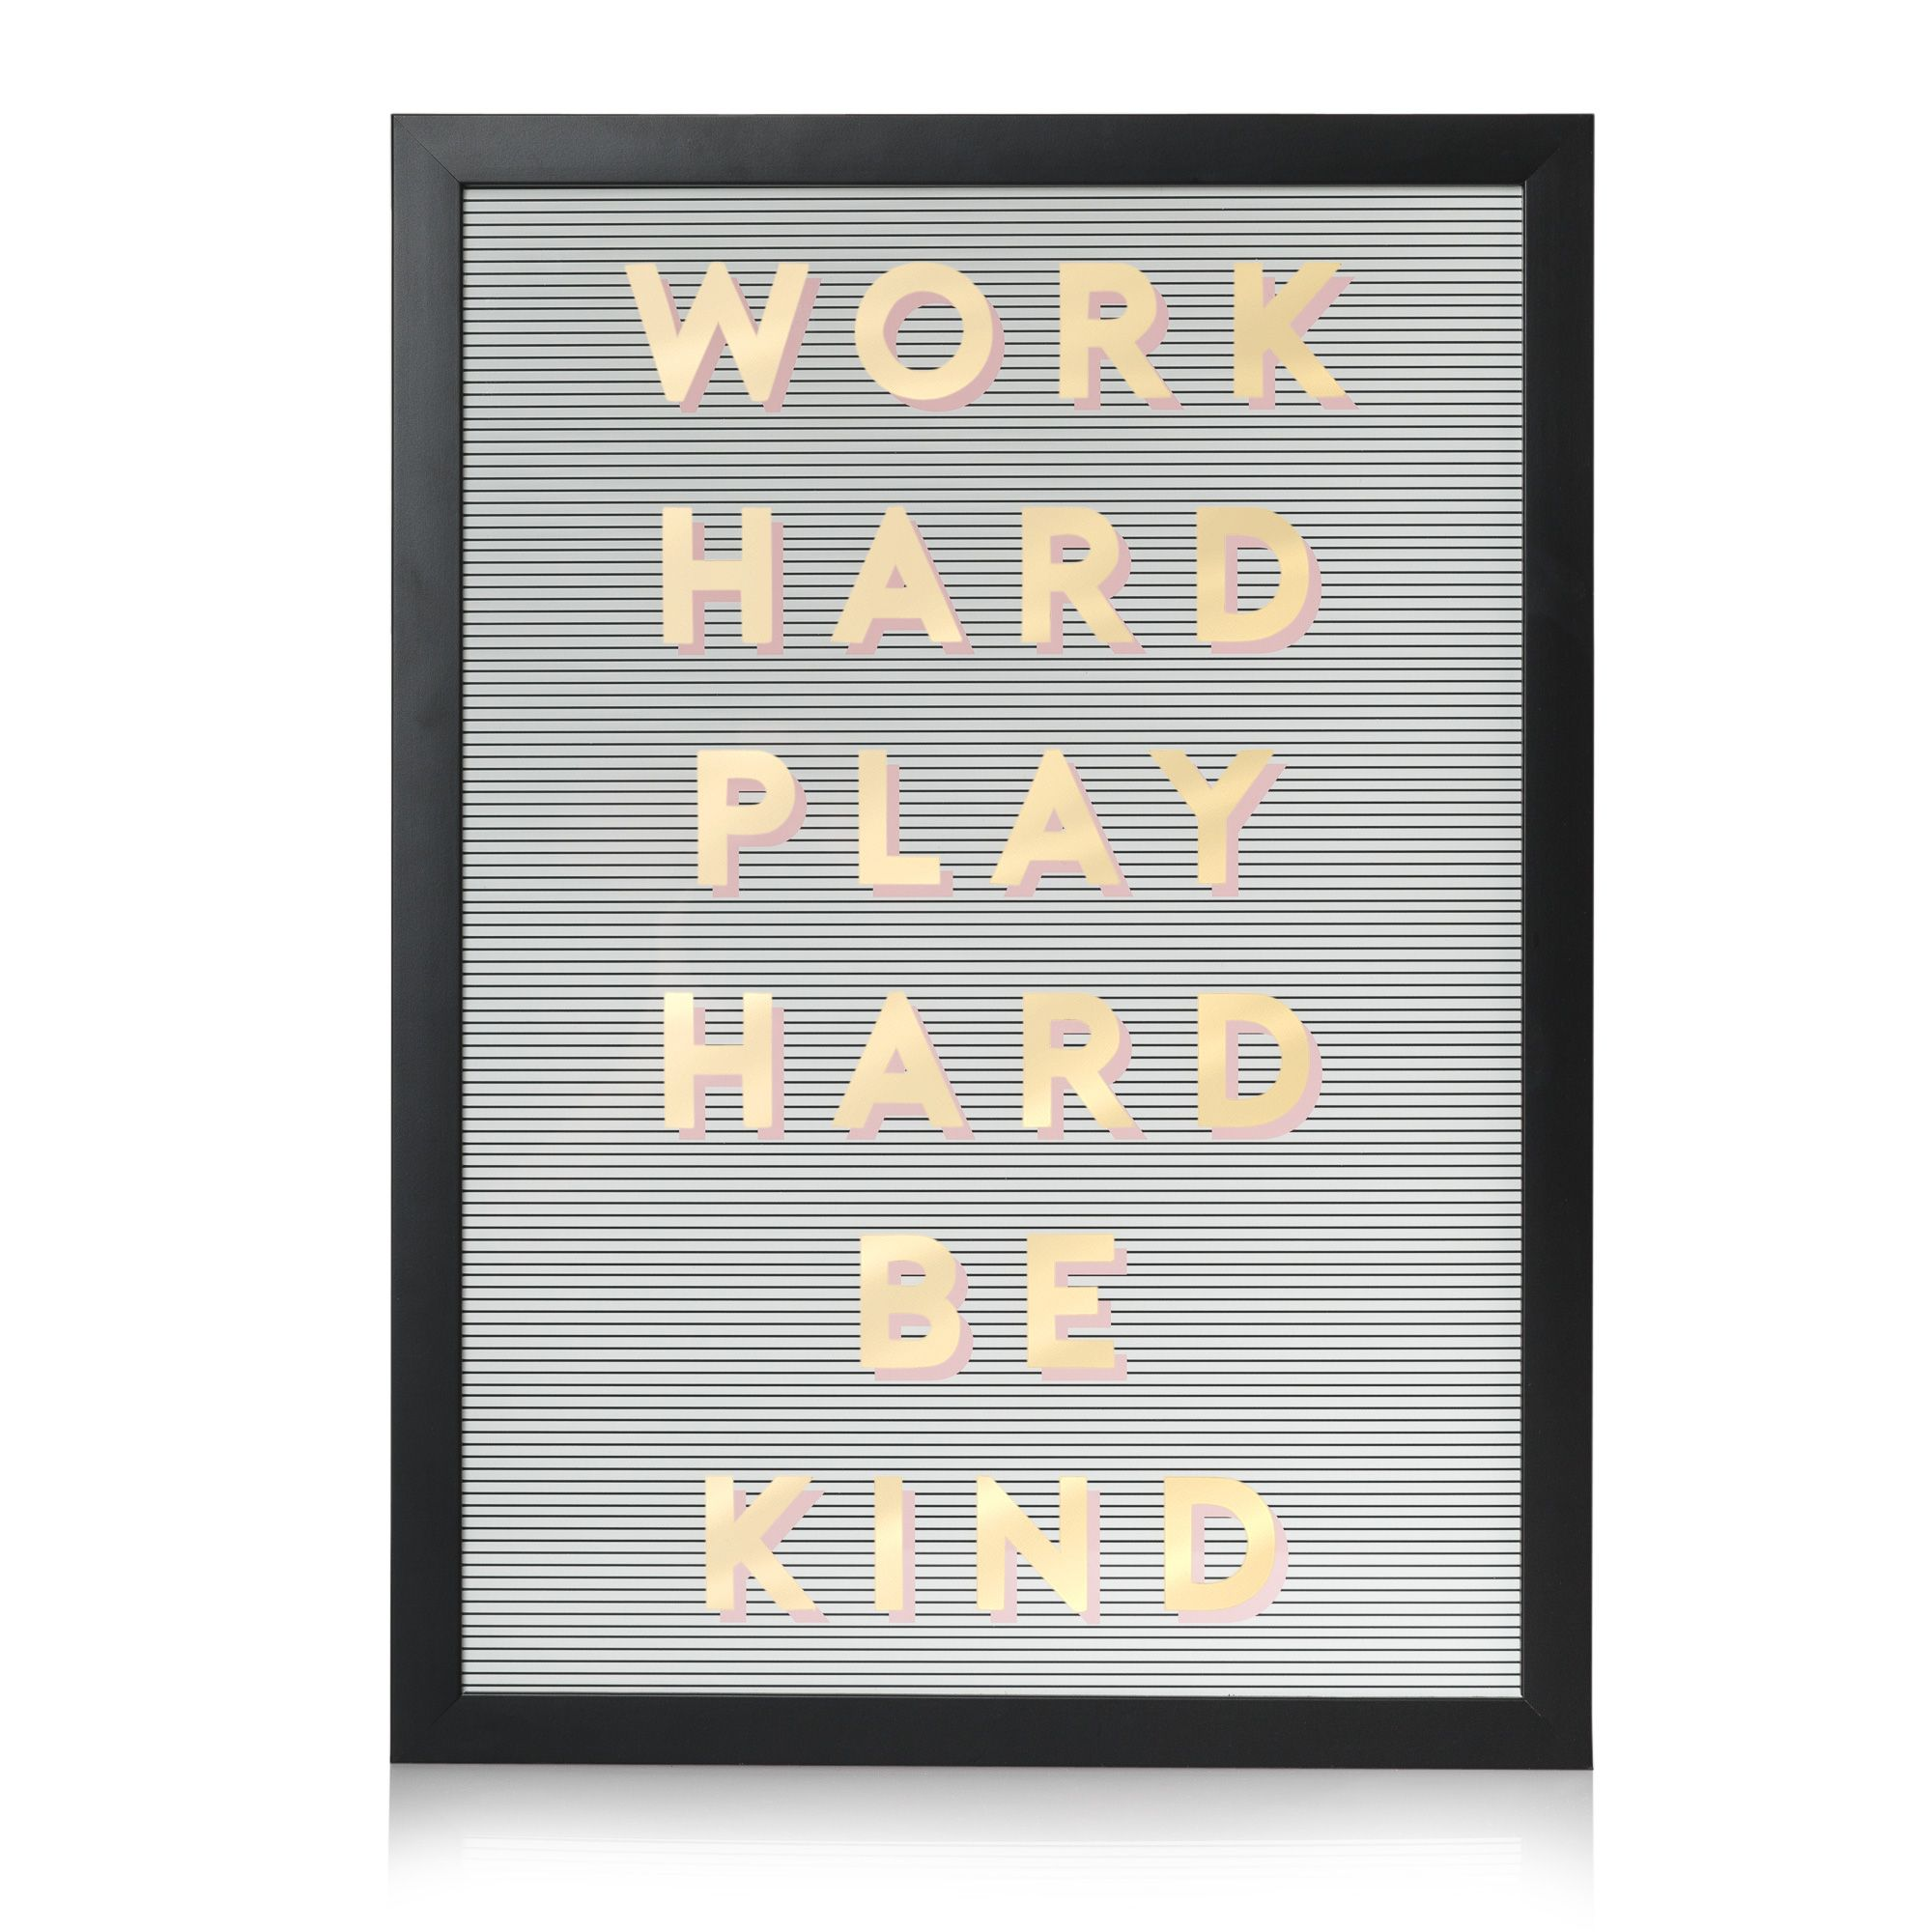 Buy The Work Hard Play Hard Be Kind Foiled Wall Art At Oliver Bonas Enjoy Free Uk Standard Delivery For Orde Foil Wall Art Gold Foil Wall Art Pattern Quotes